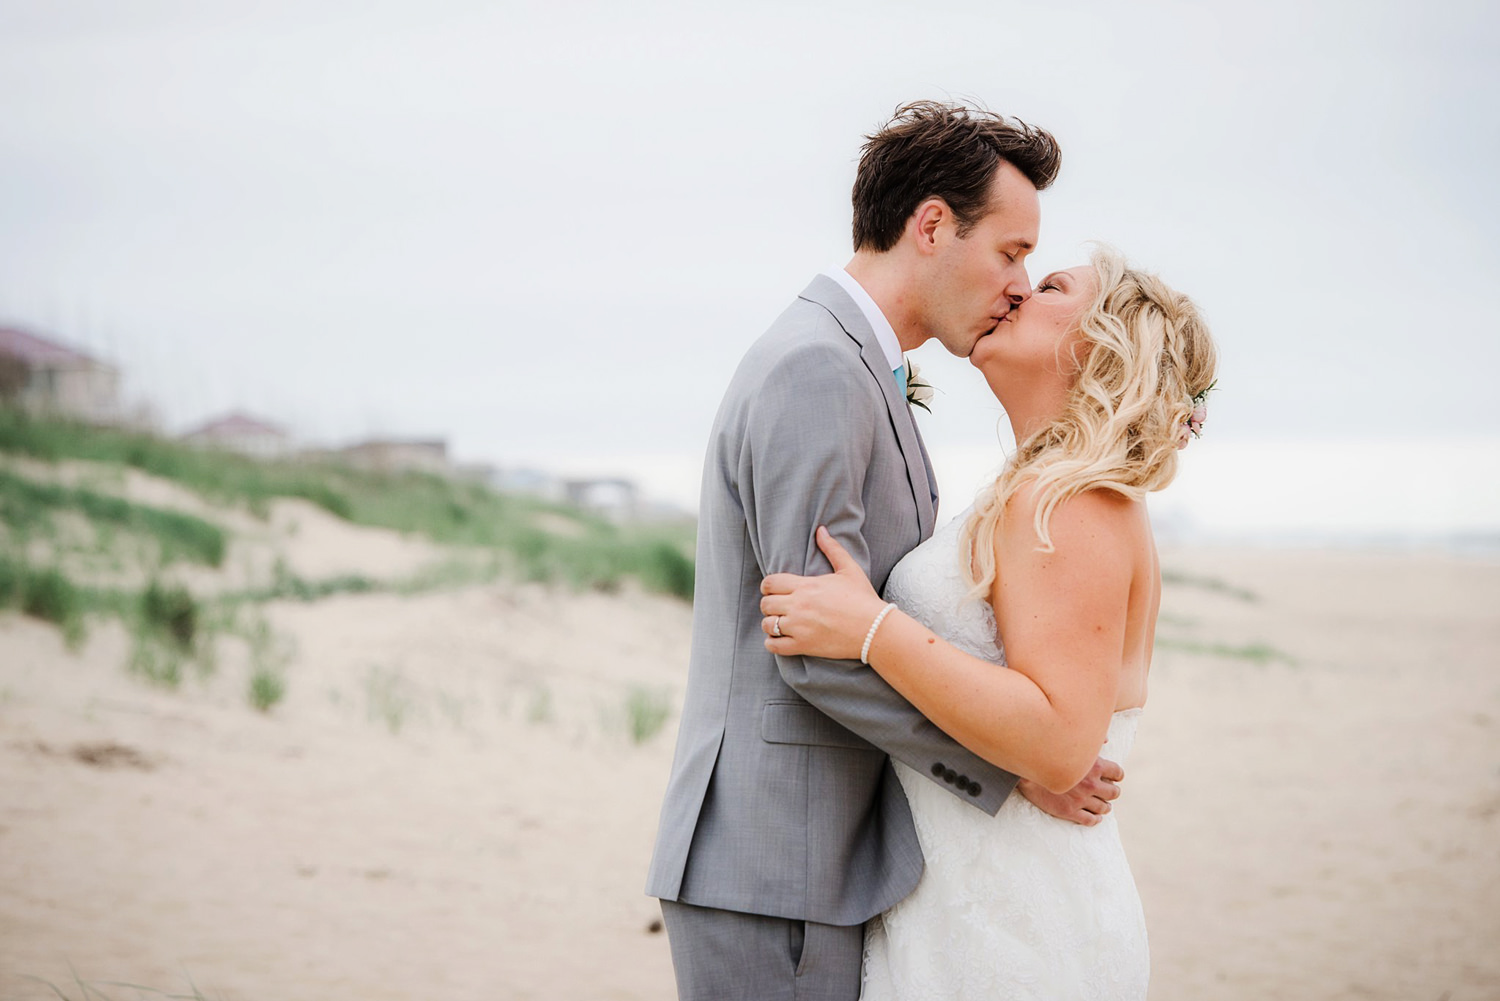 Sandbridge-Beach-Wedding-Bride-groom-Portrait-Melissa-BLiss-Photography-VA-Beach-wedding-Photographer.jpg